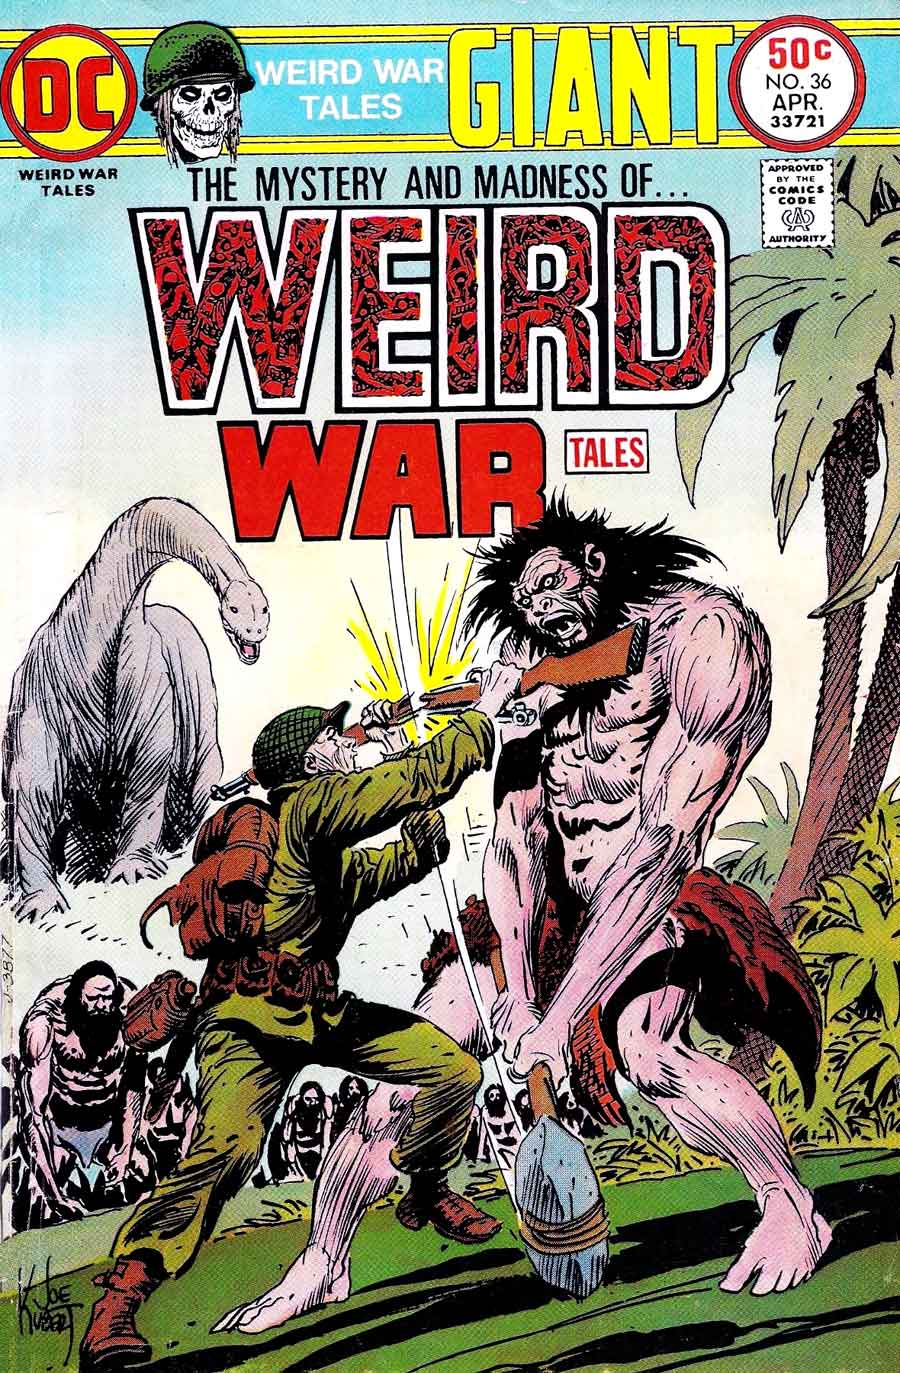 Weird War Tales v1 #35 dc bronze age comic book cover art by Joe Kubert